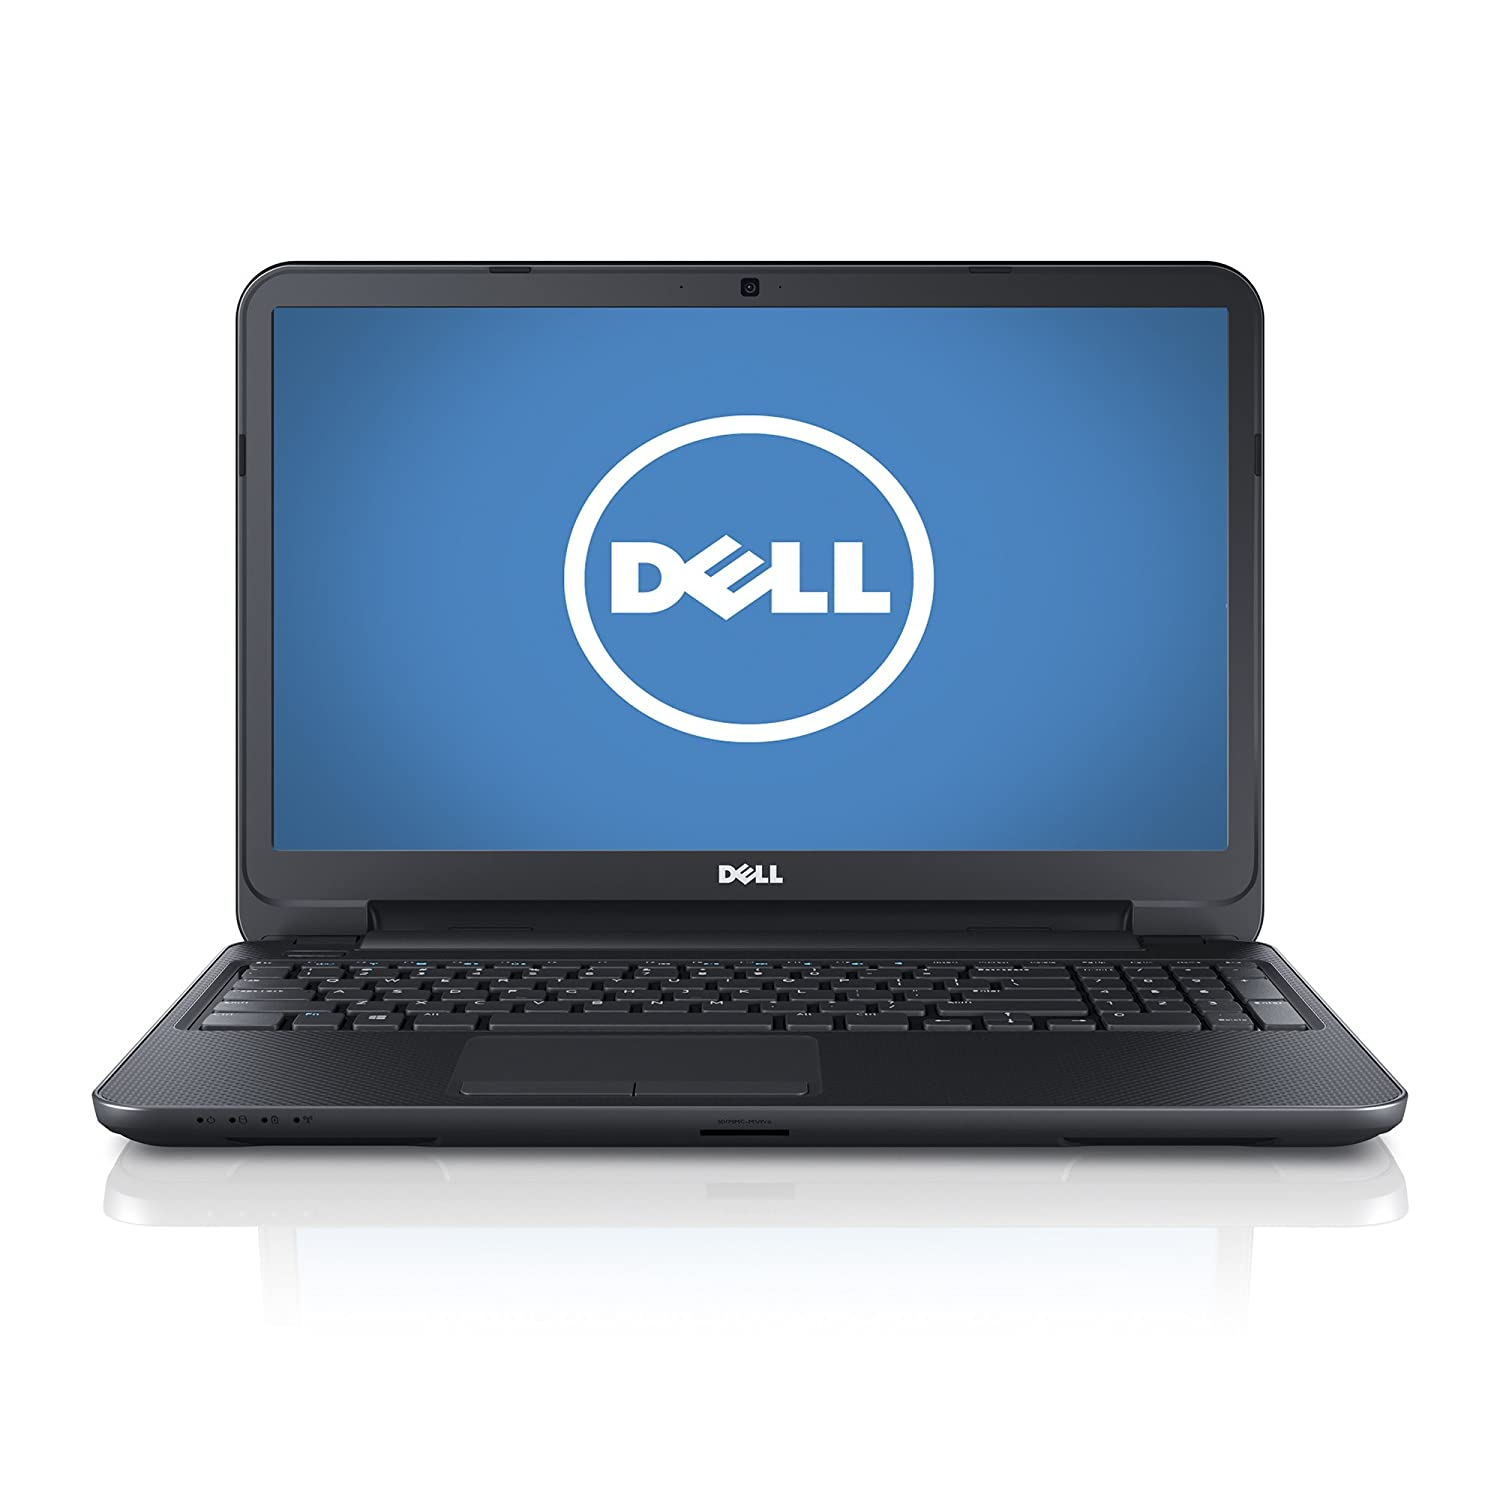 Dell Inspiron i15RV-1435BLK 15.6-Inch Laptop